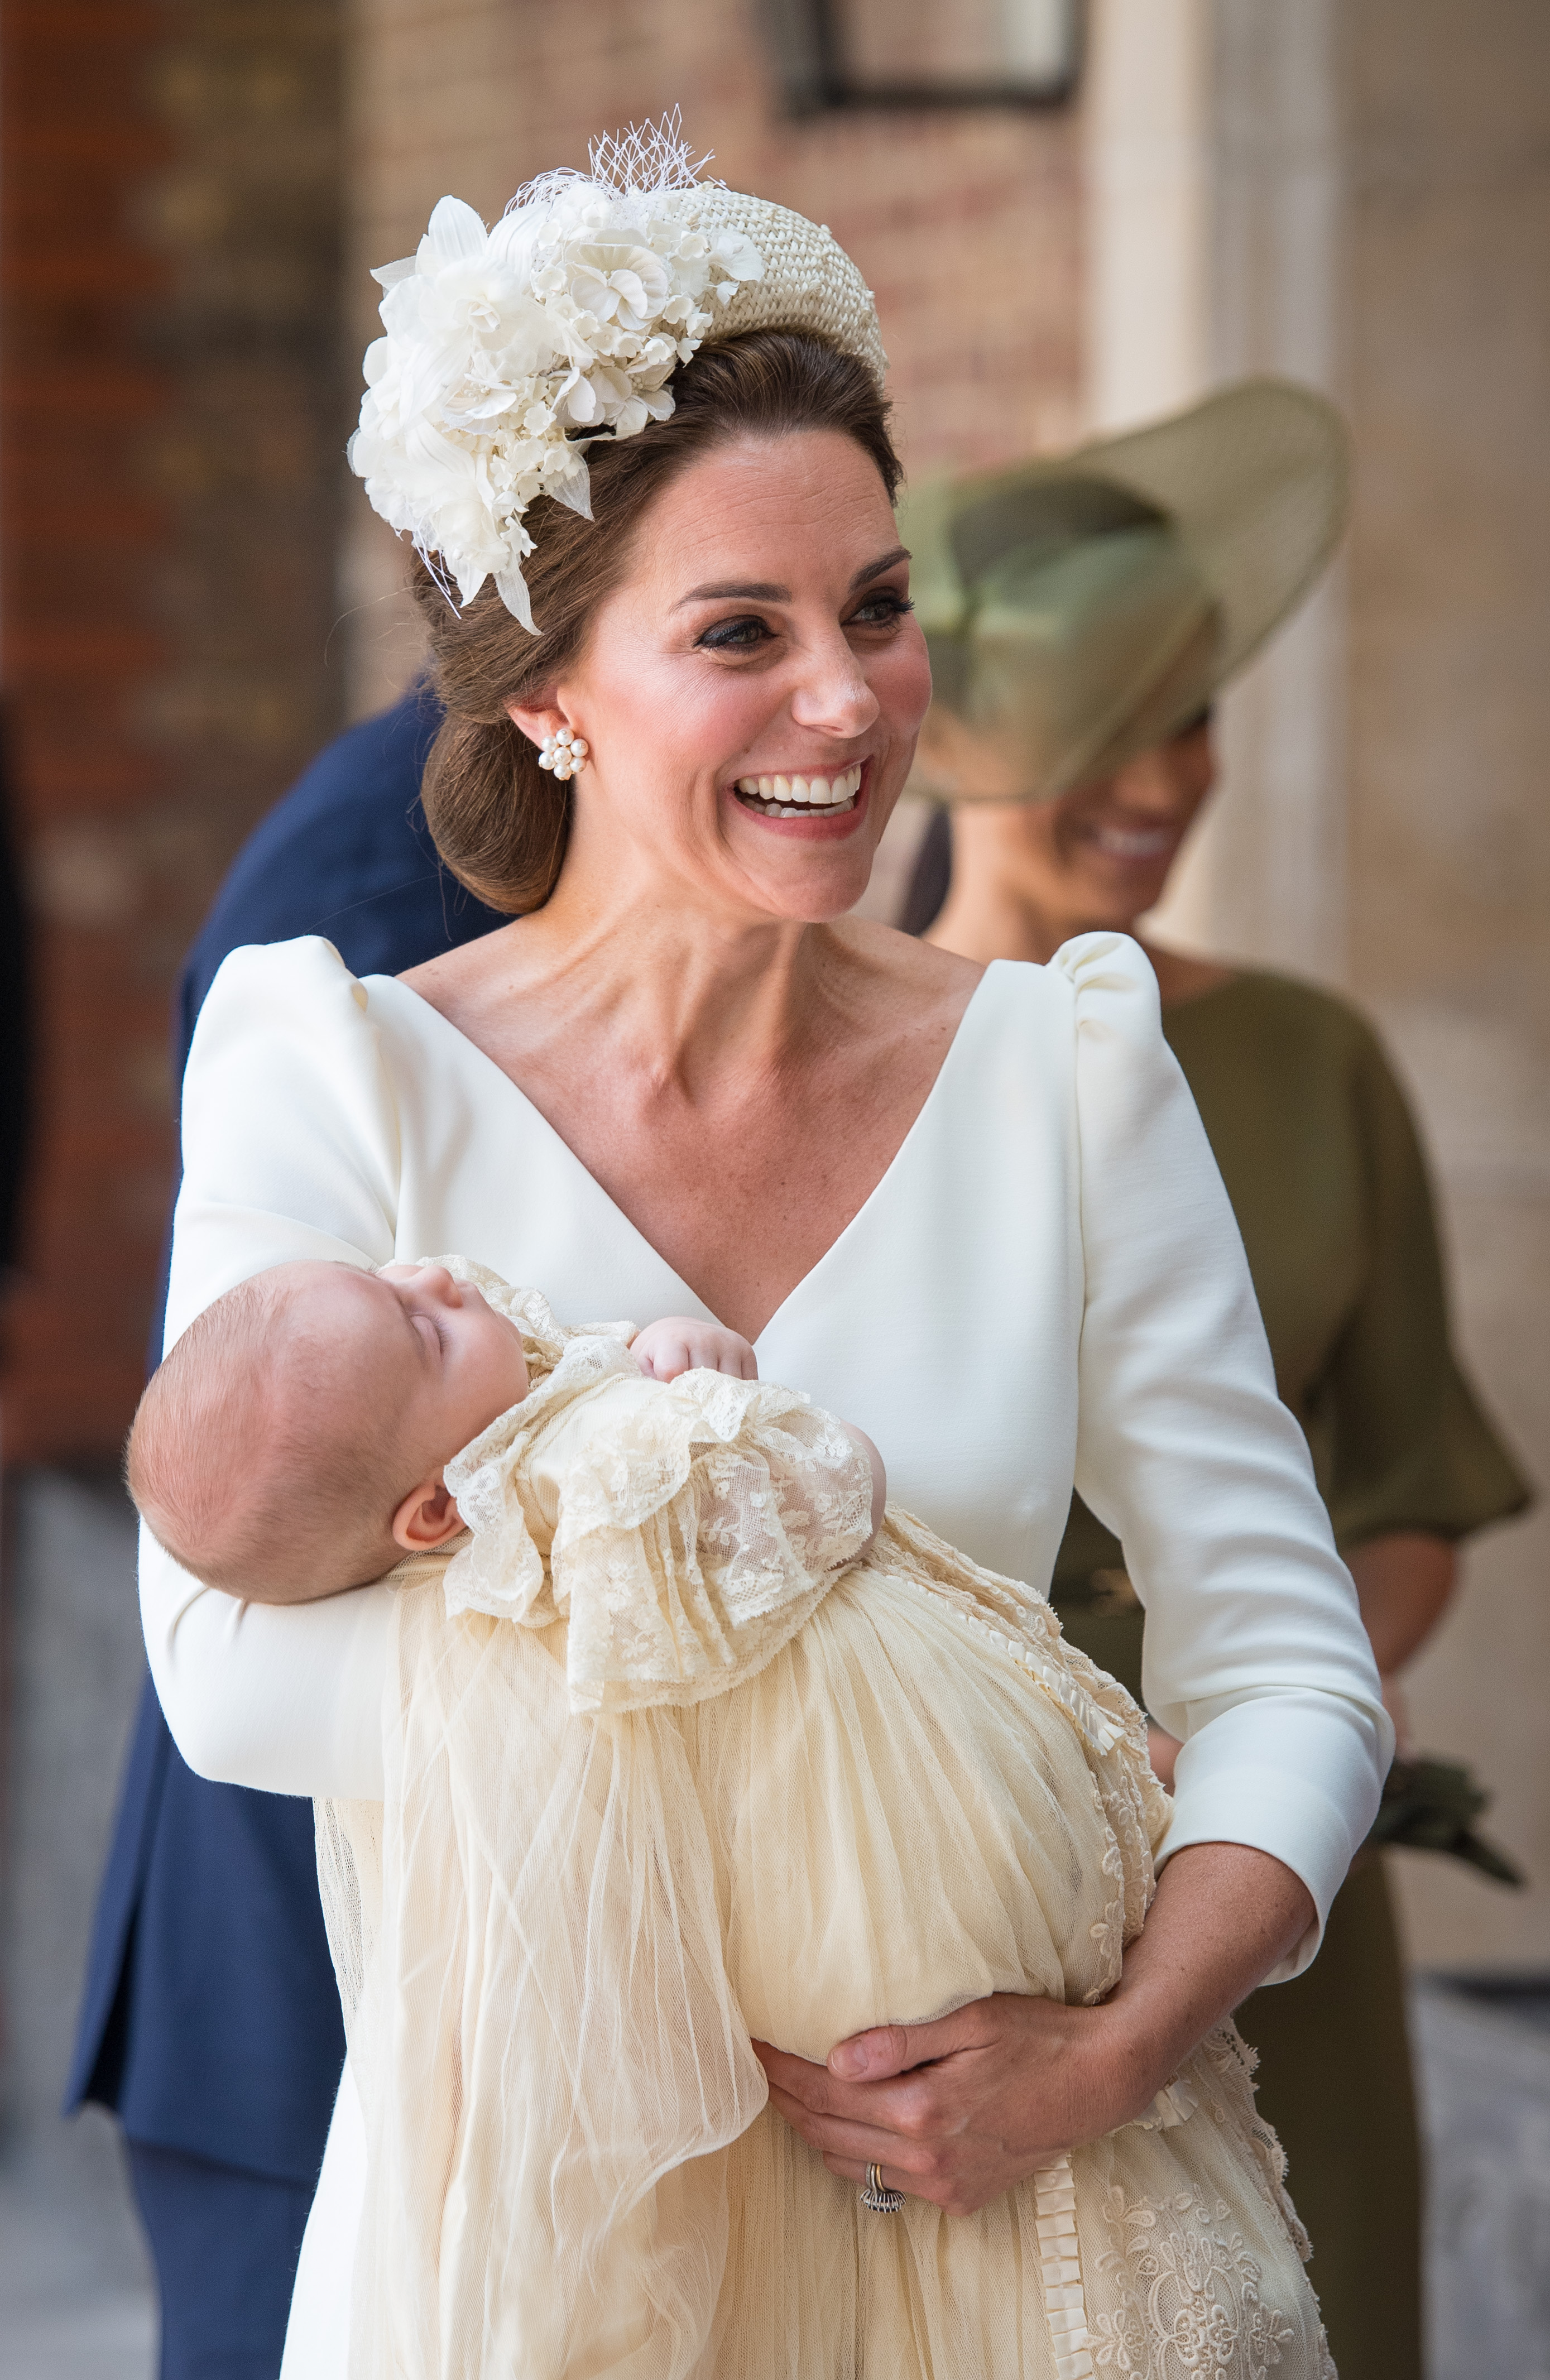 Kate Middleton at Prince Louis christening (Source: Getty Images)